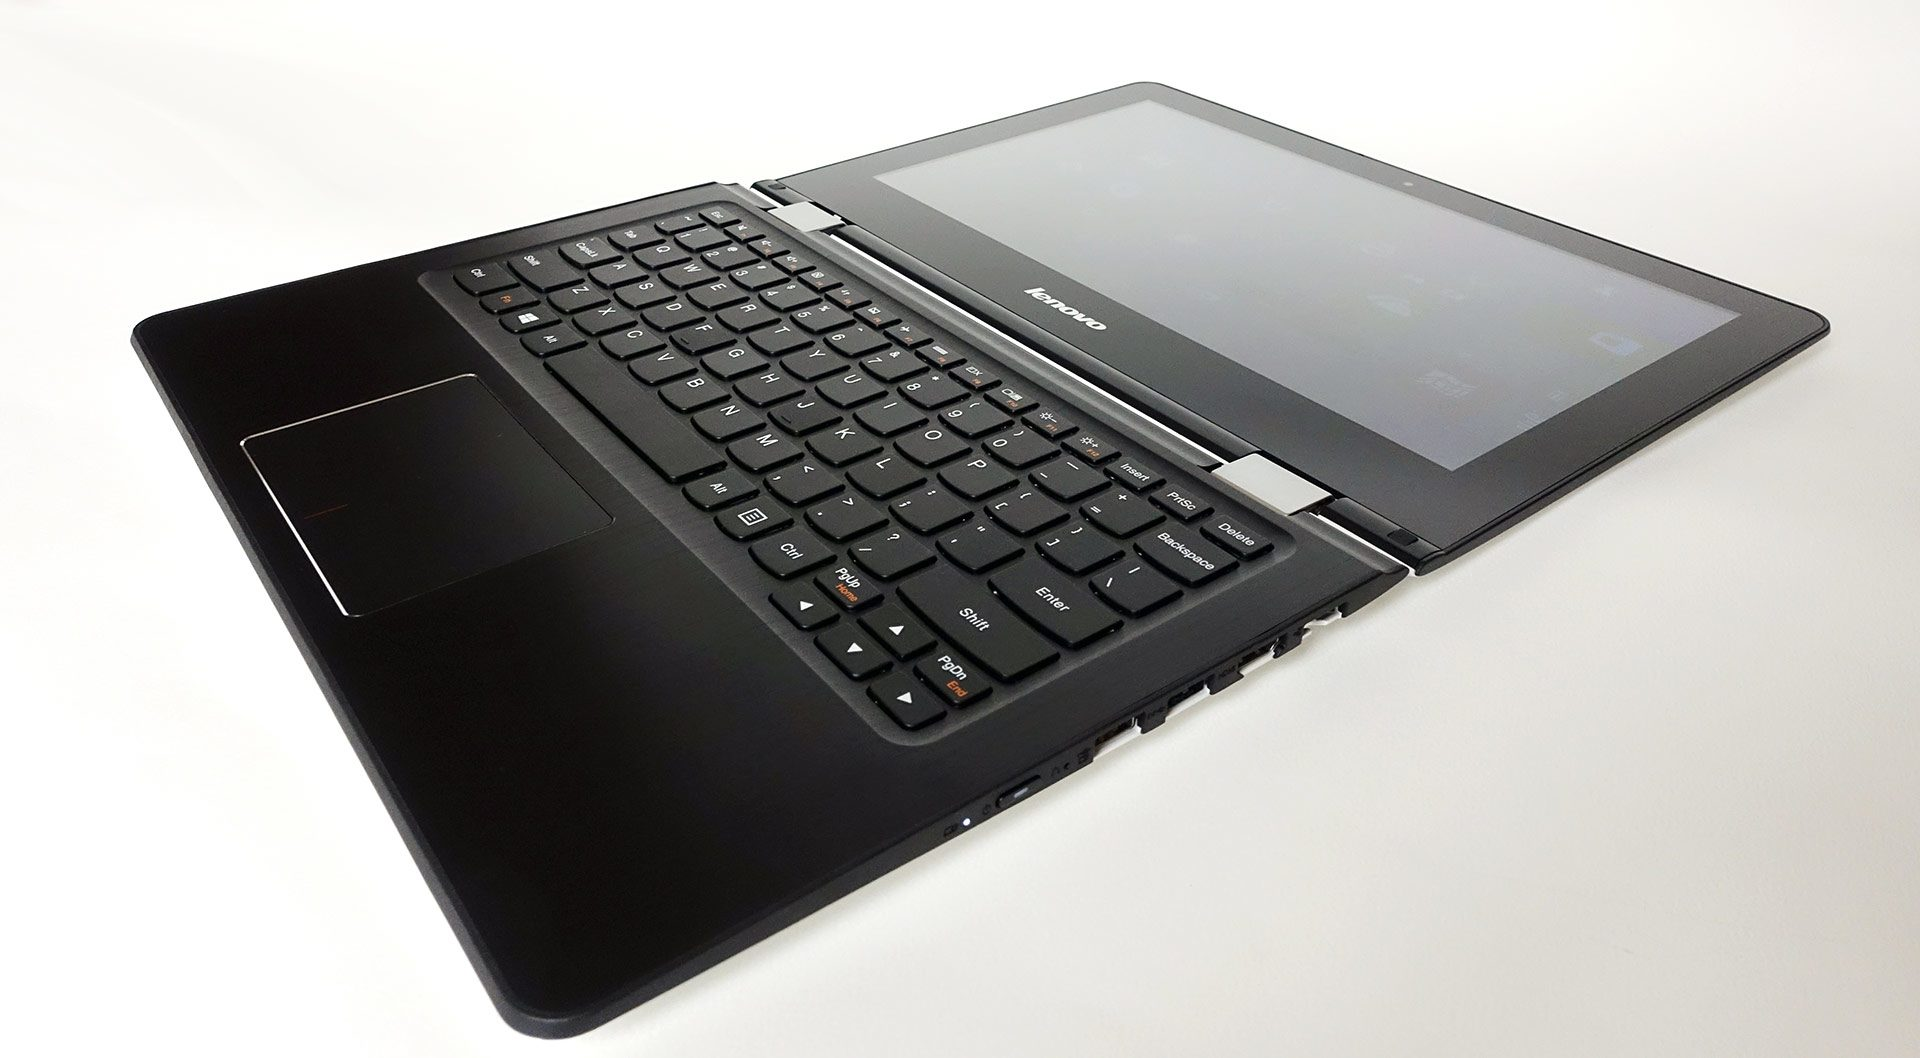 Lenovo Yoga 300 11 (Flex 3 11) review - an affordable 11-inch hybrid